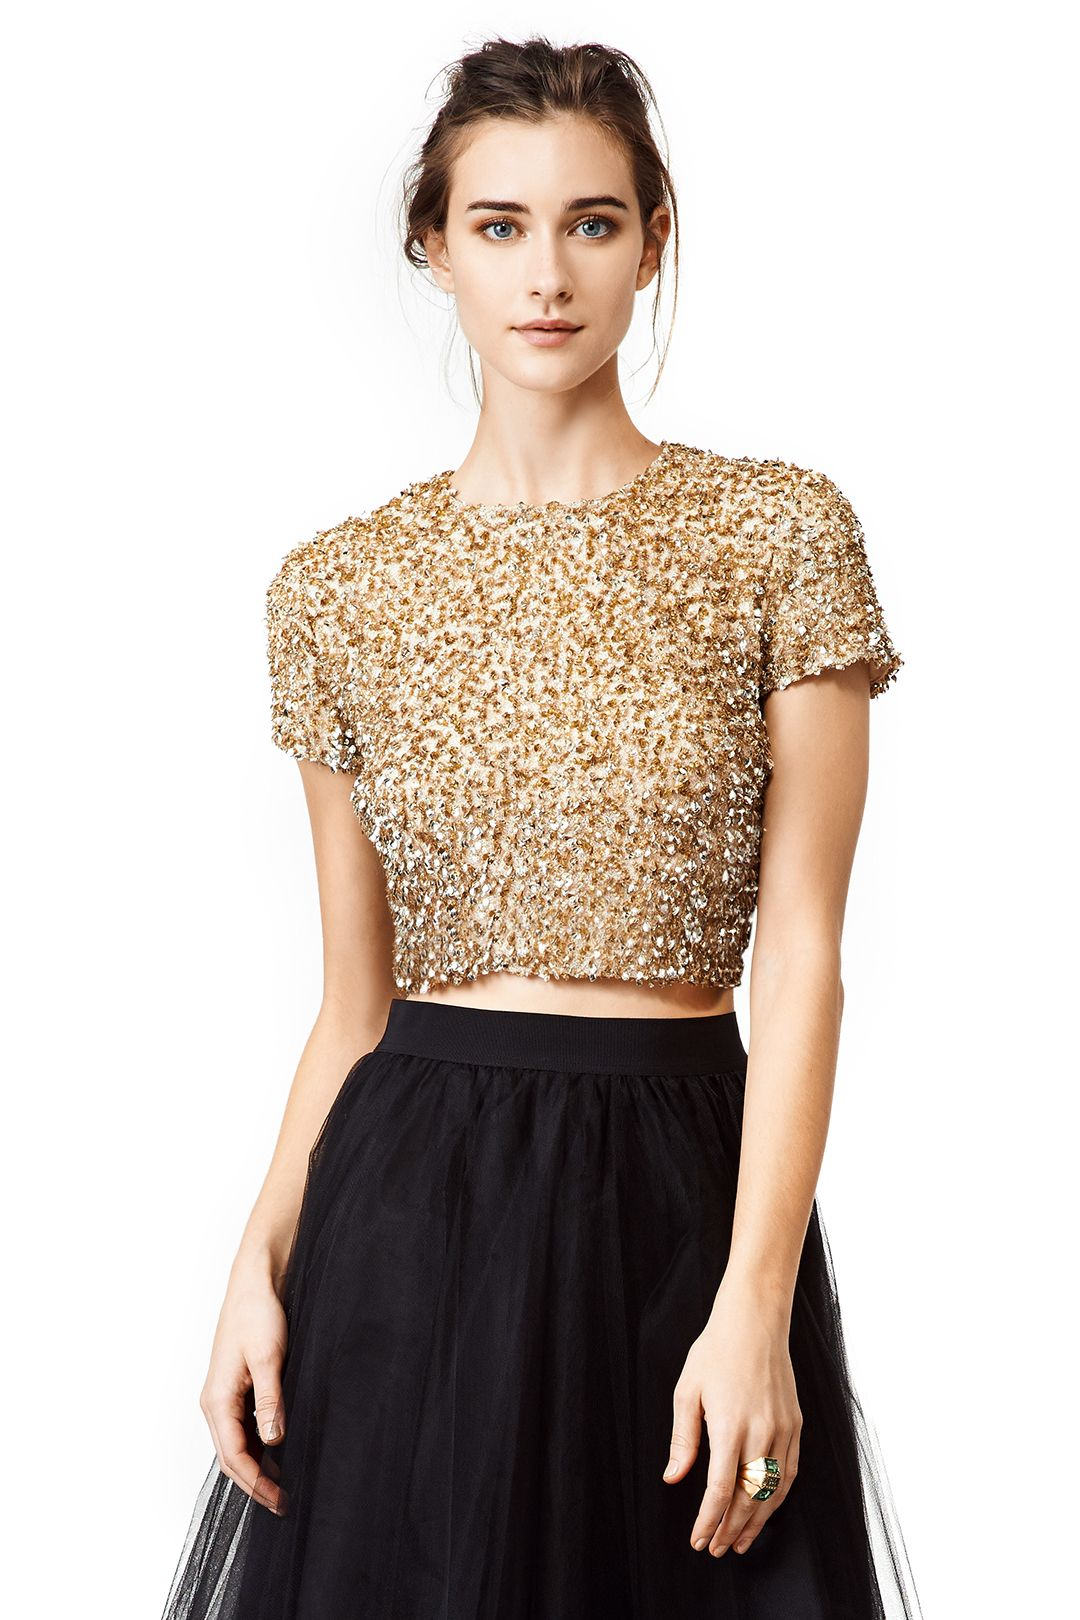 Love this \'Gold Dust\' crop top by Badgley Mischka for Holiday ...